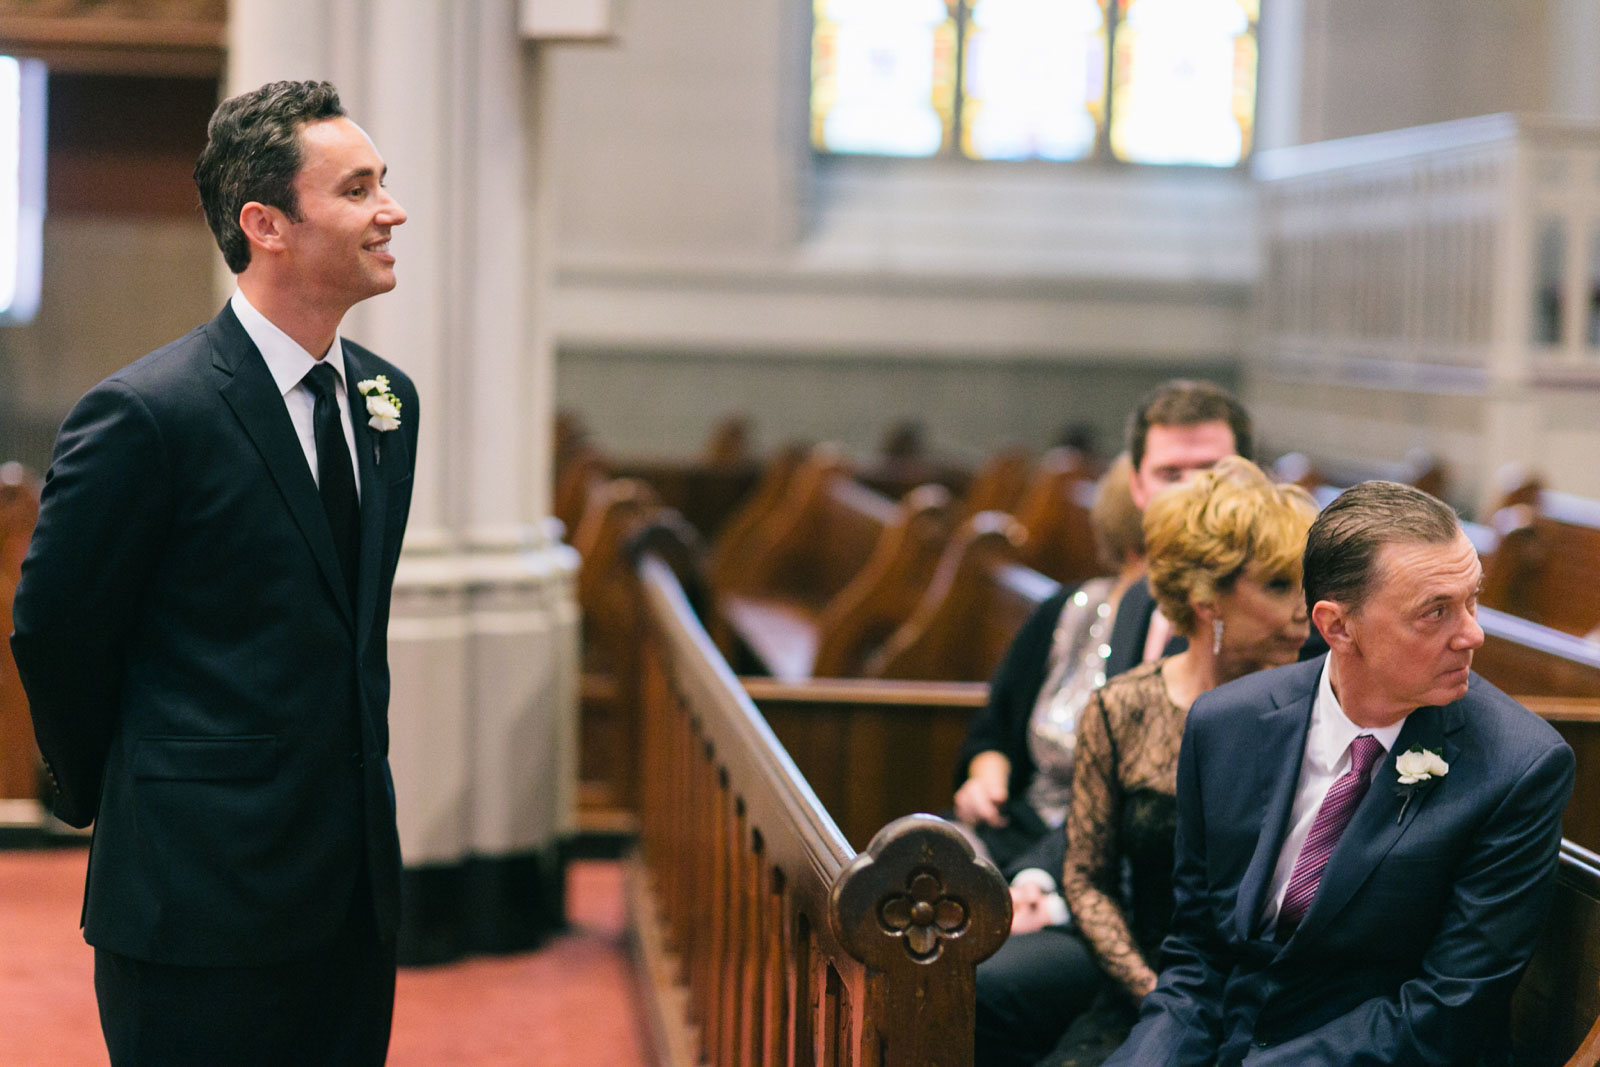 groom smiling at bride as bride walks down the aisle at church in South end in Boston